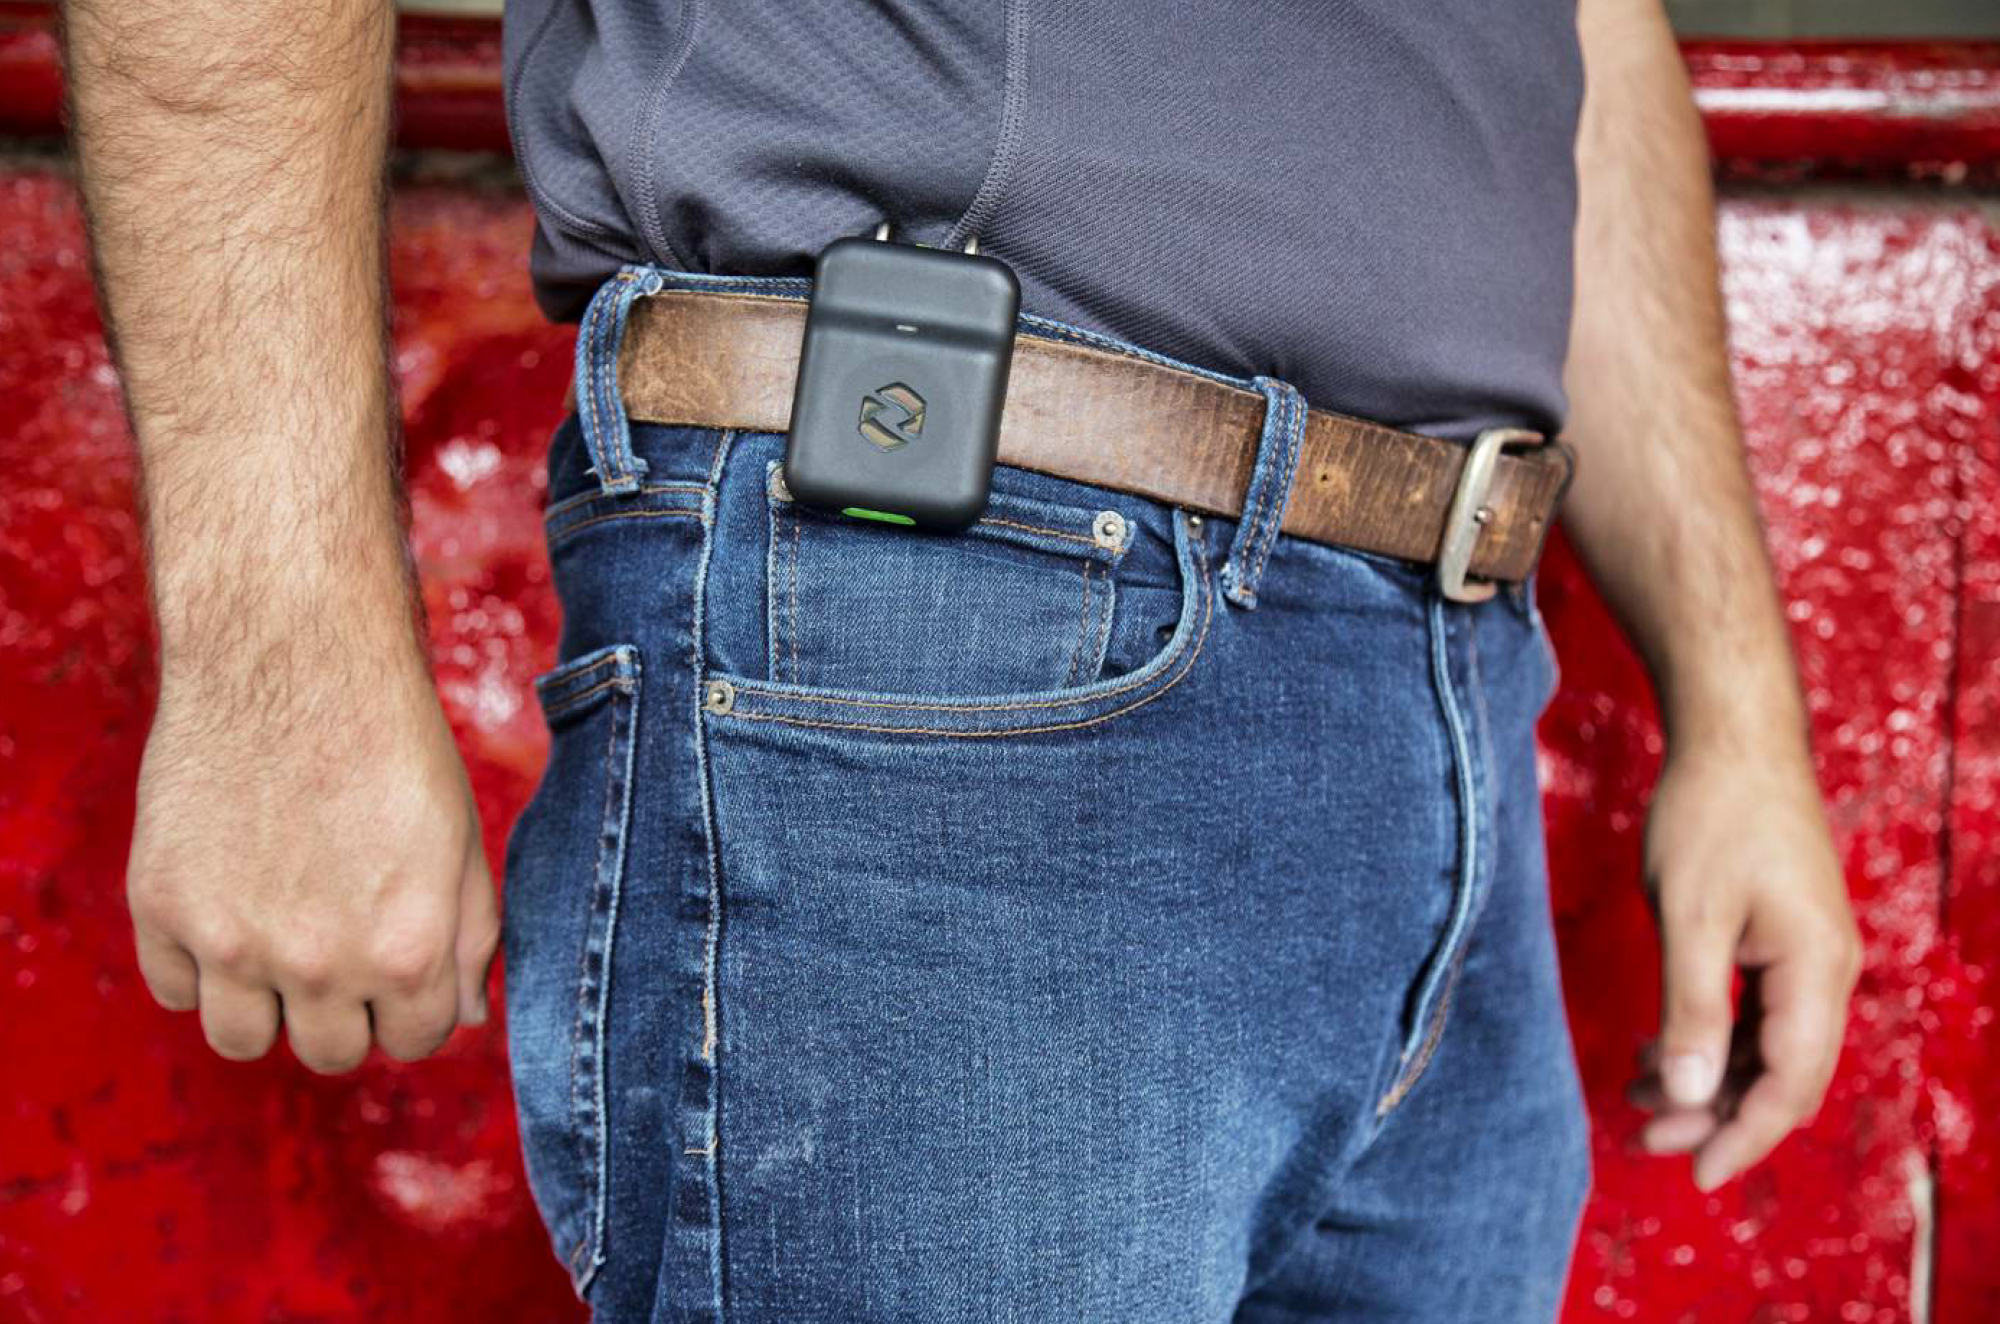 Spot-r is a wearable sensor that alerts a safety supervisor in the event of a slip, trip or fall.